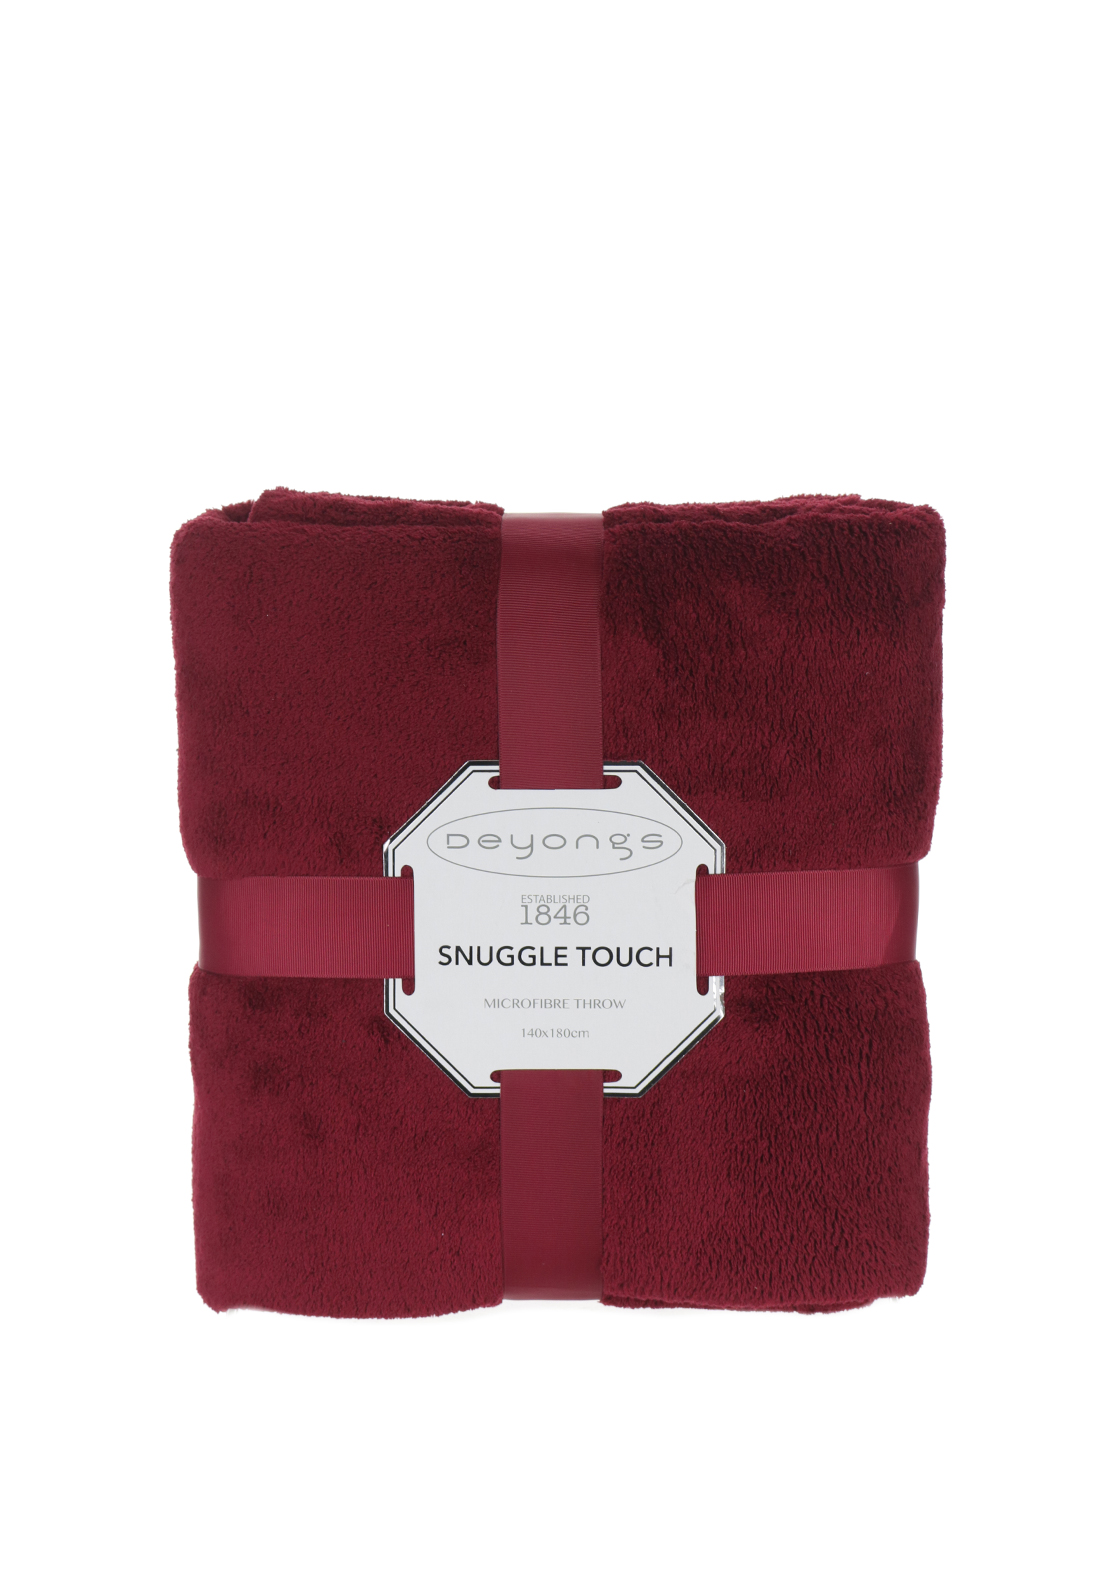 Deyongs Snuggle Touch Throw Bordeaux